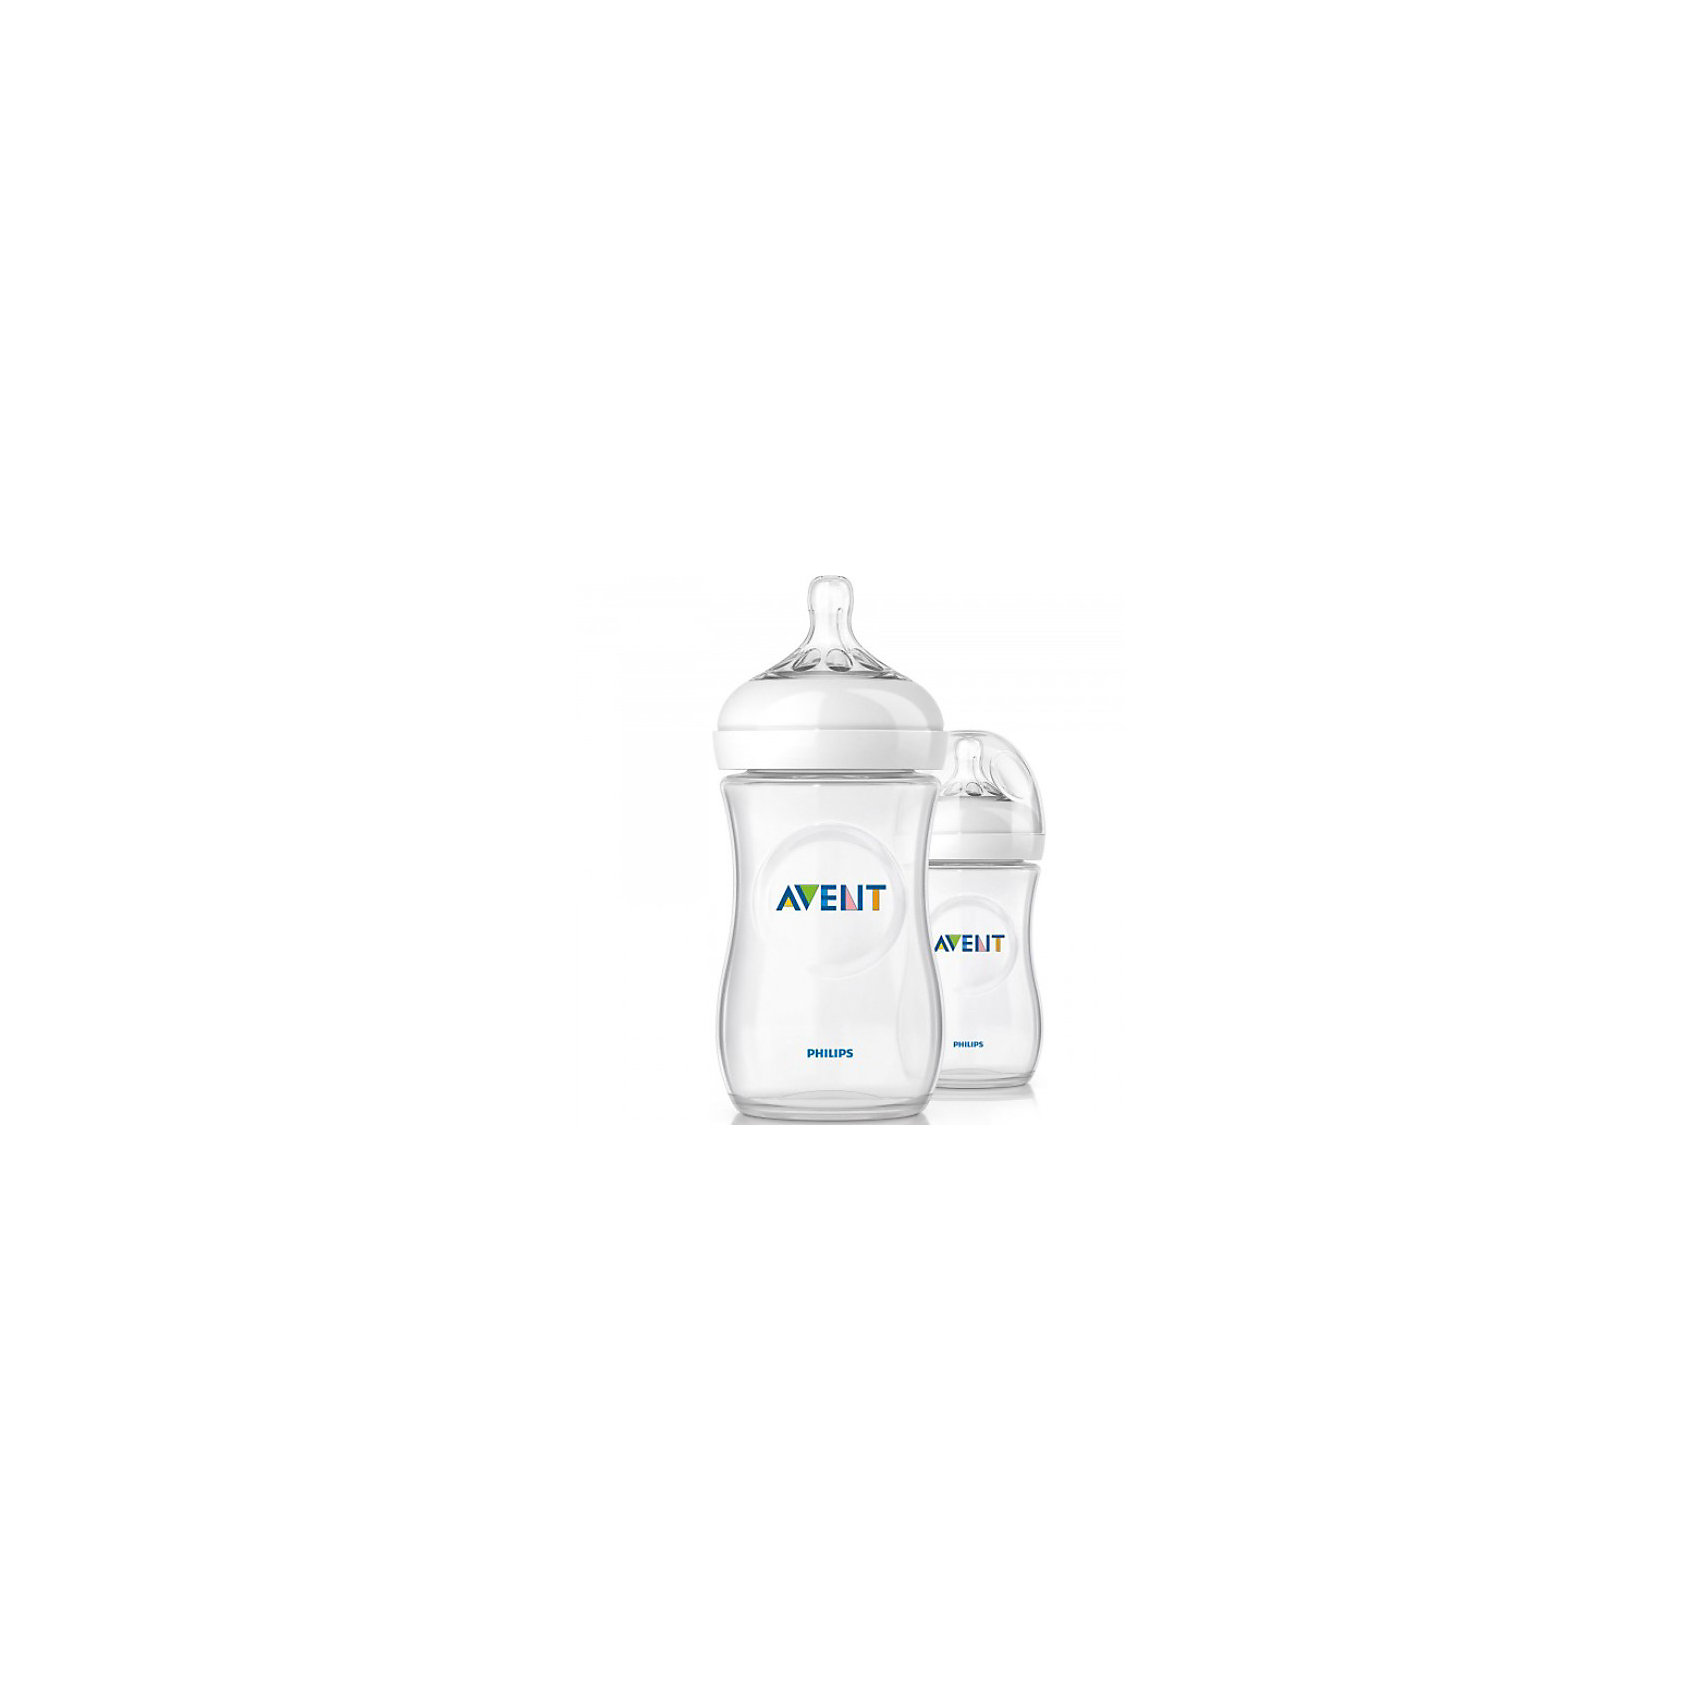 ��������� ��� ��������� Natural, 260 ��, ��������� �����, 2 ��., AVENT (PHILIPS AVENT)